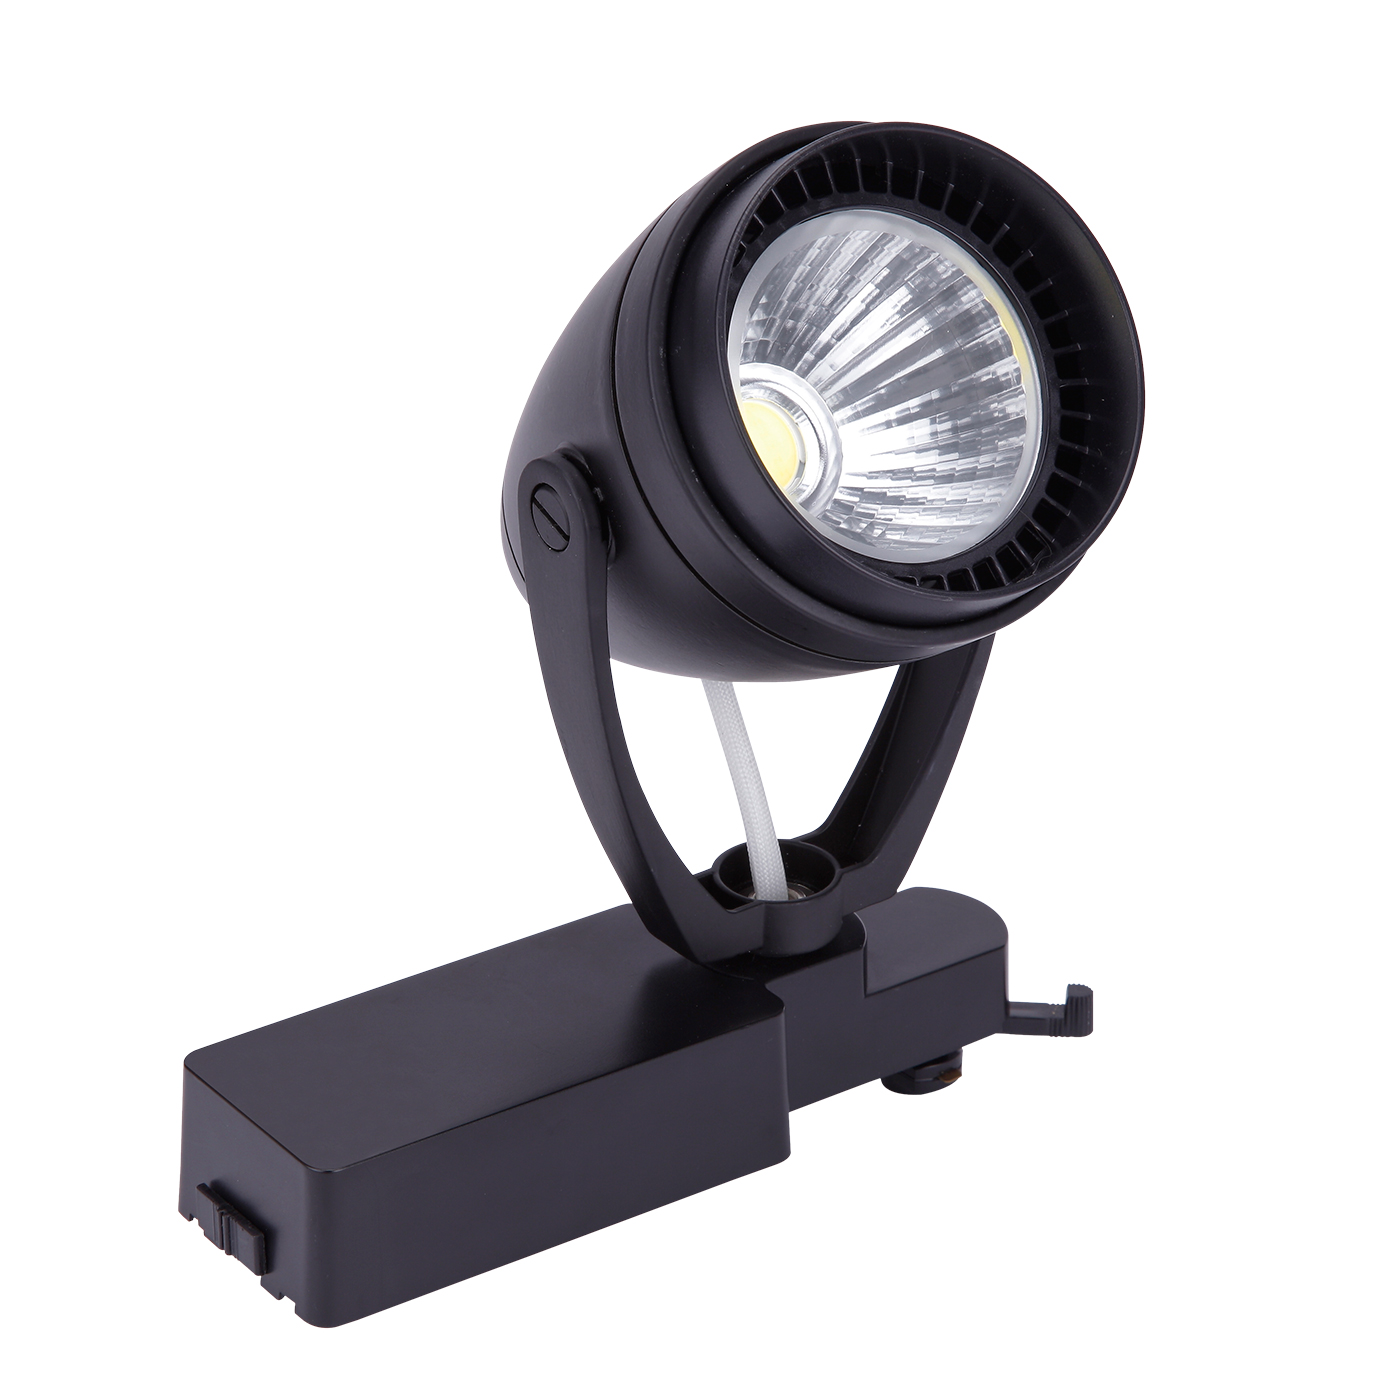 Biard LED 12W Track Light - Black